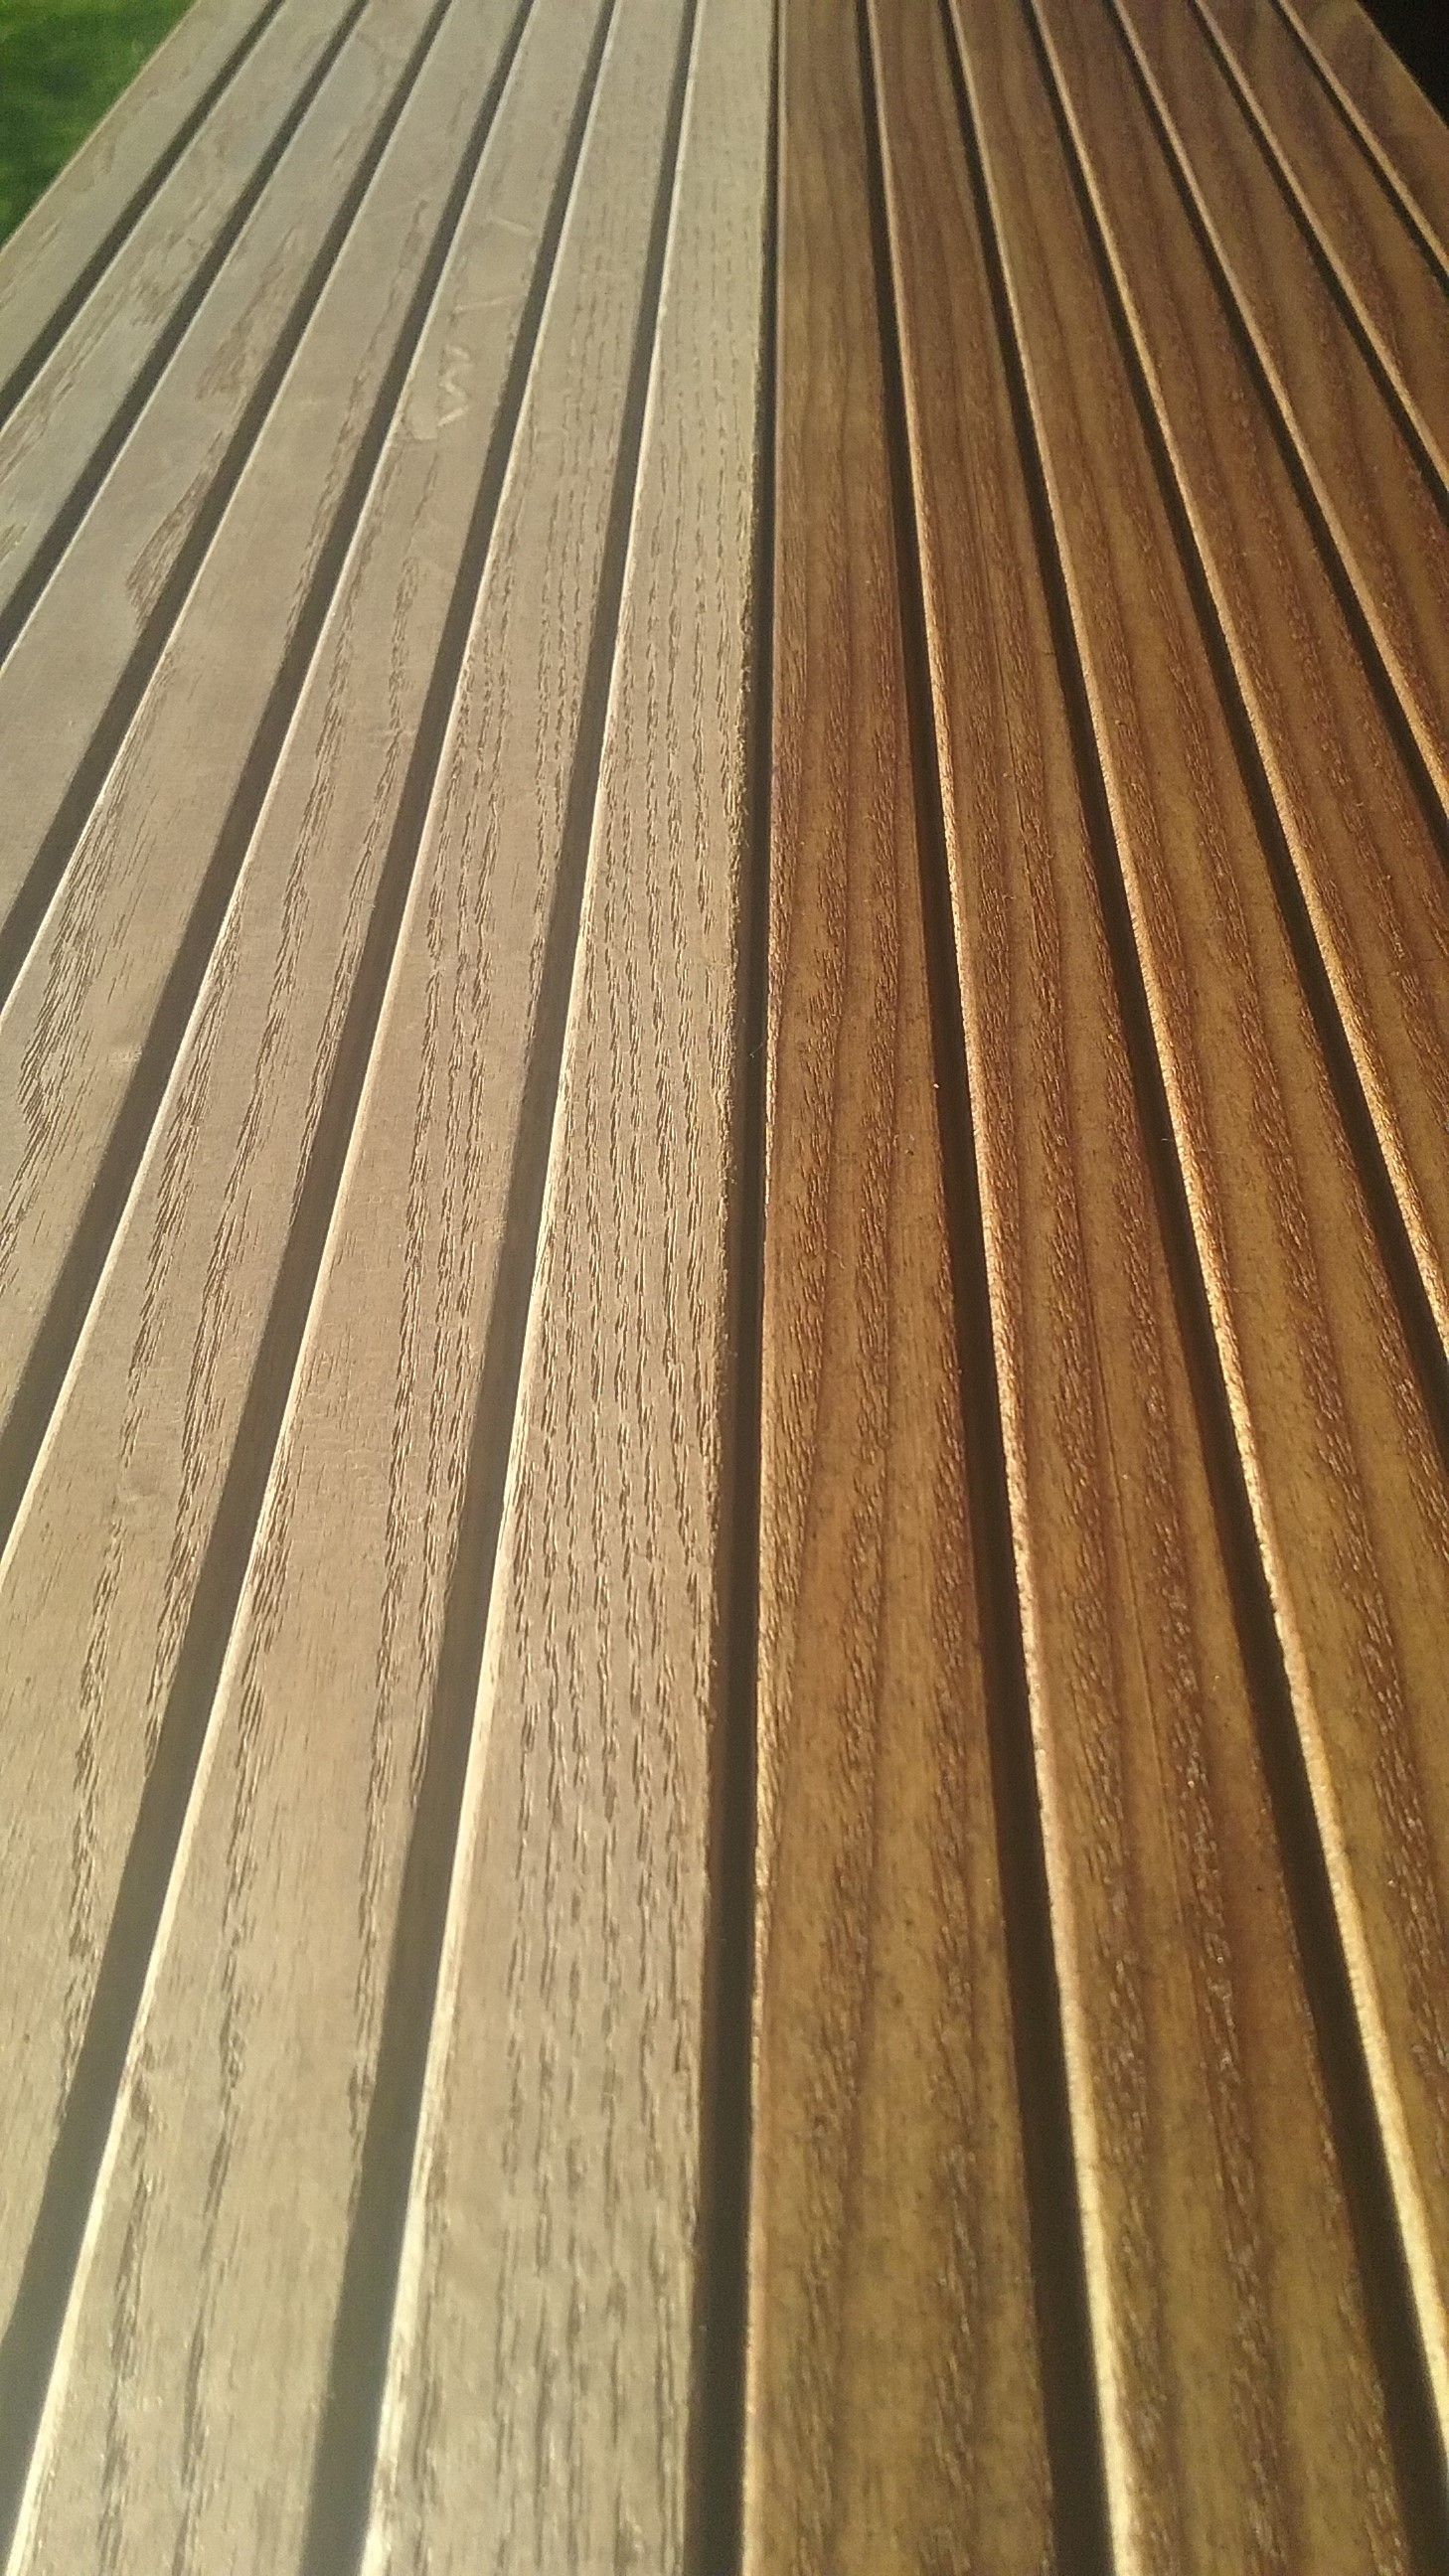 Novawood Thermally Modified Wood Decking Unfinished Exposed 4 Months And Cutek Extreme Wood Preservative 2 Coats Of Clear Coating Applied No Cleaners With Images